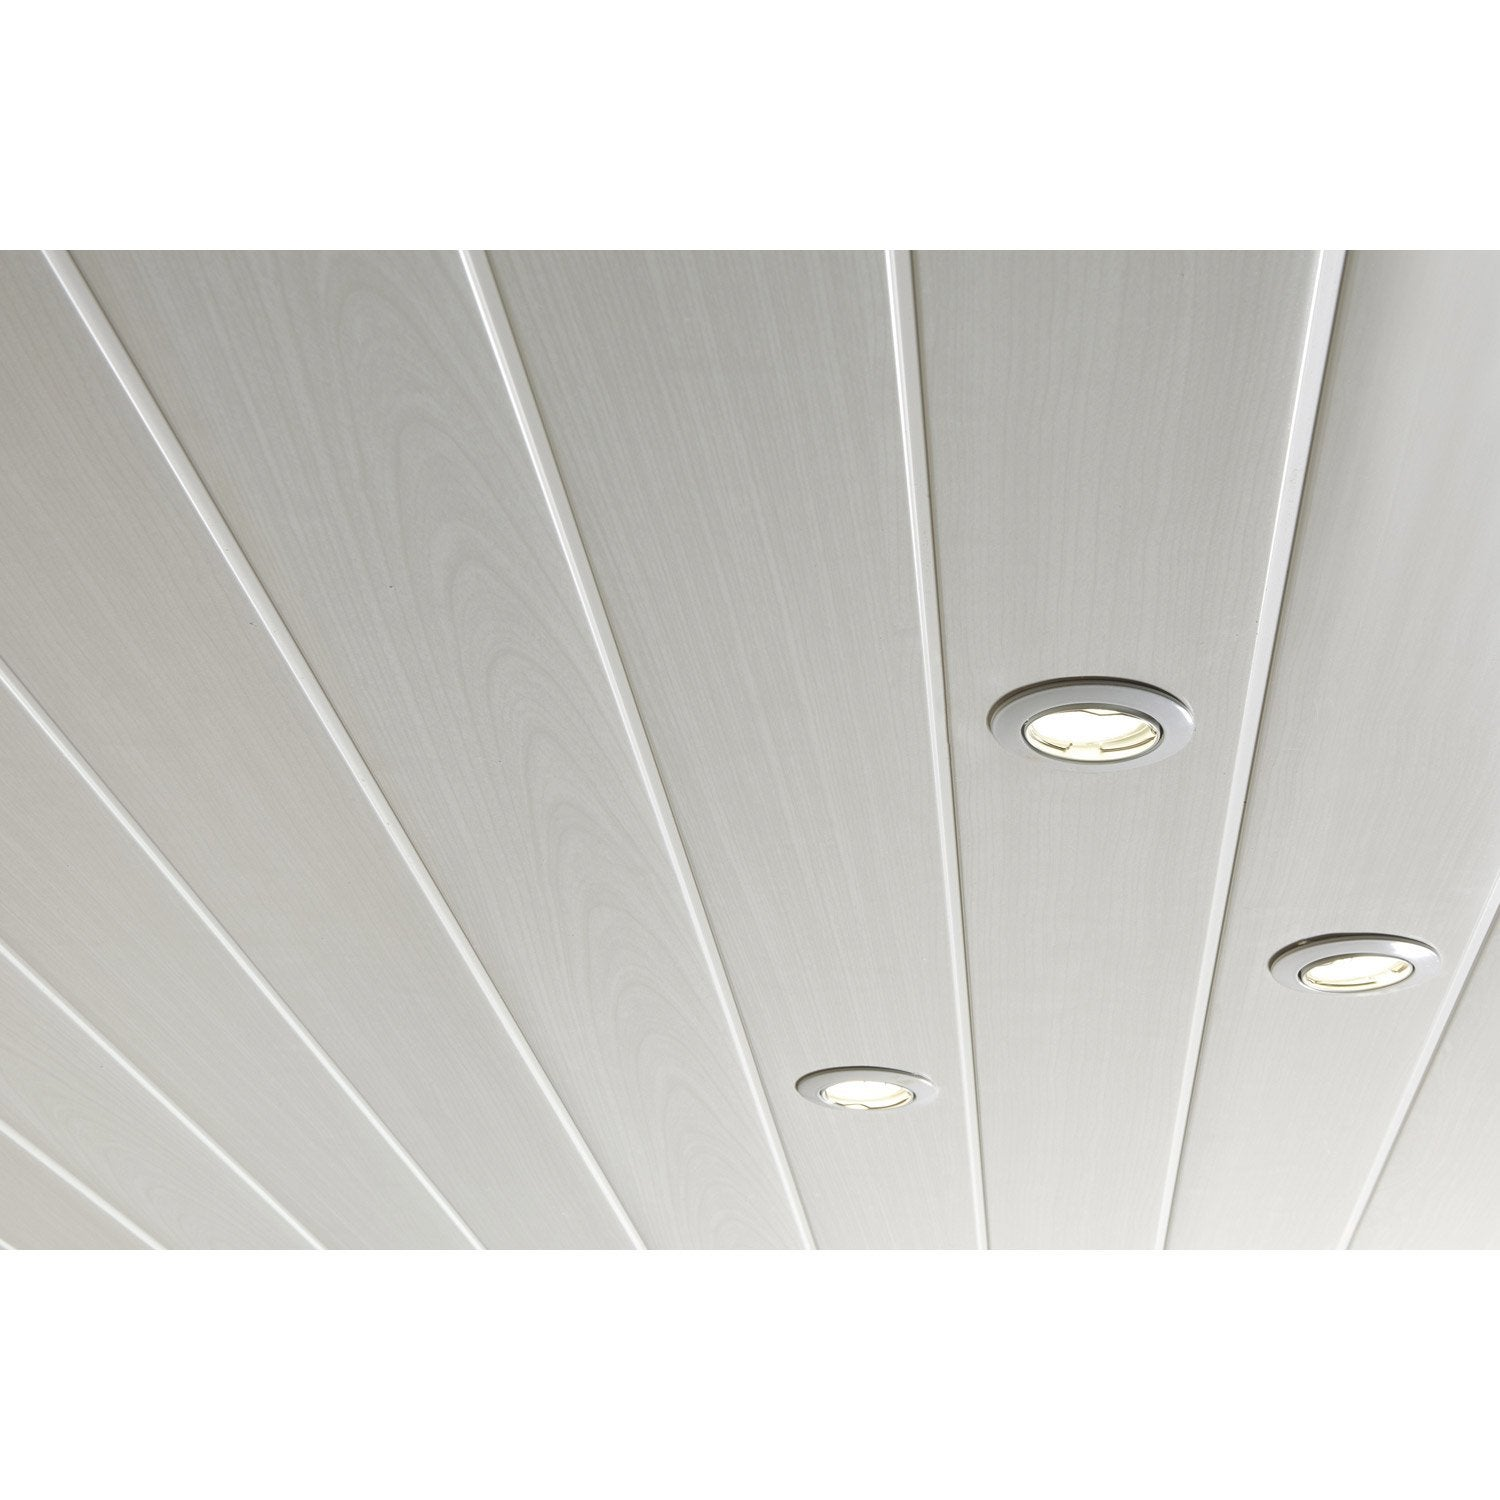 Pose de lambris pvc en plafond tours prix travaux for Pose de lambris pvc plafond